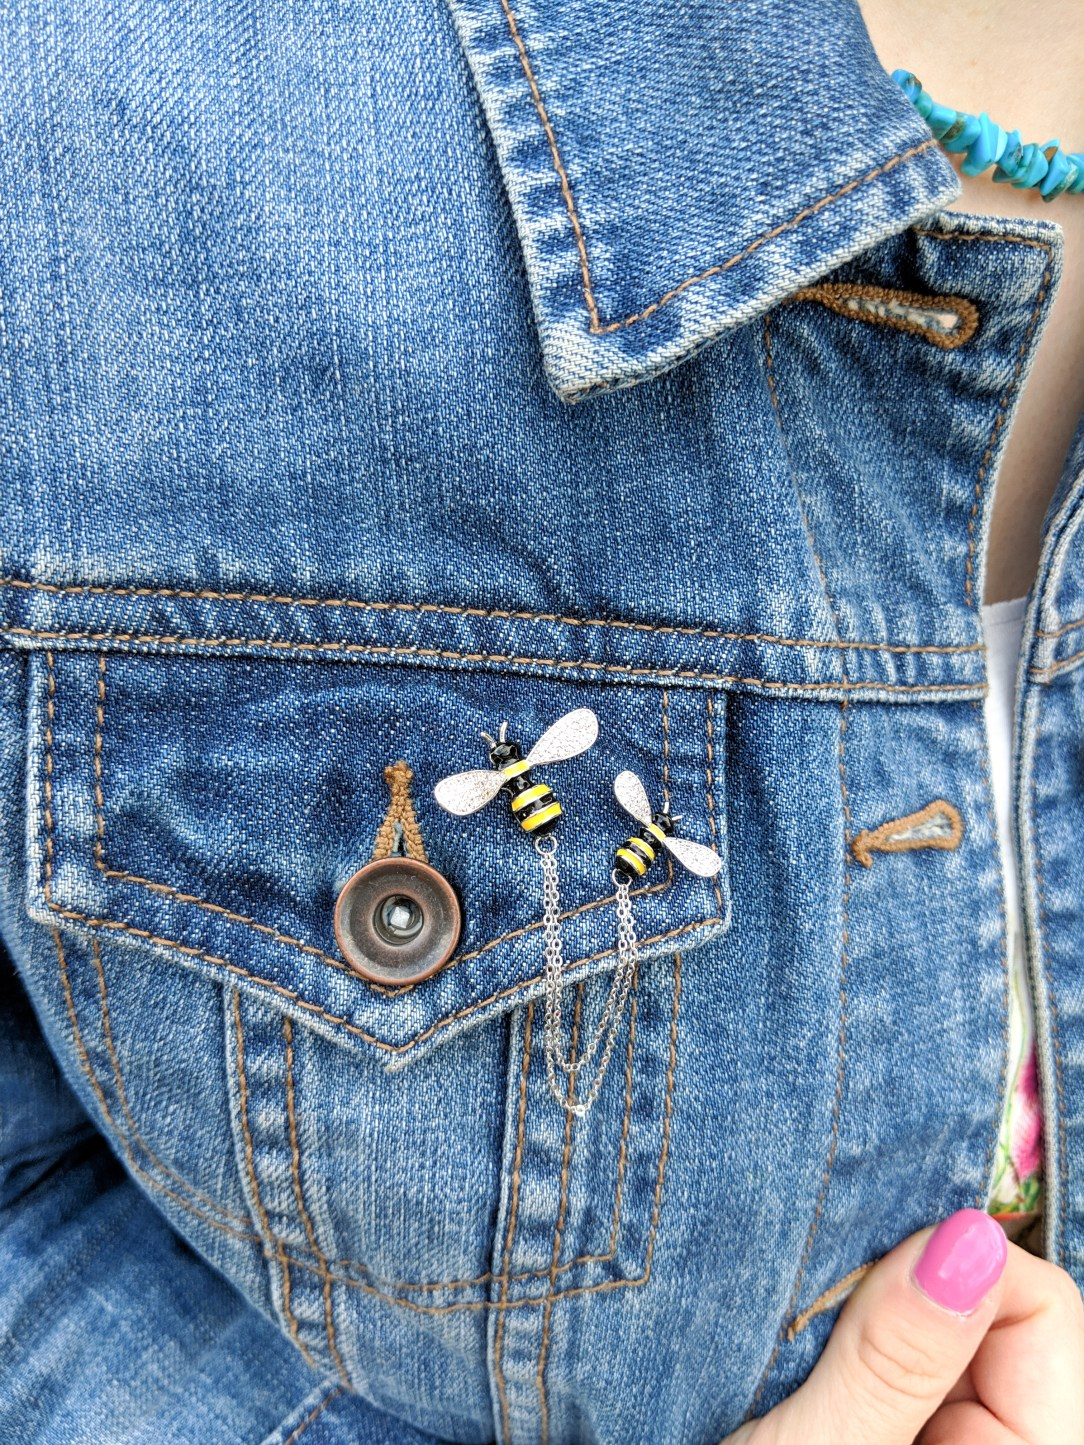 bumble bee pins, pink nail polish, turquoise necklace